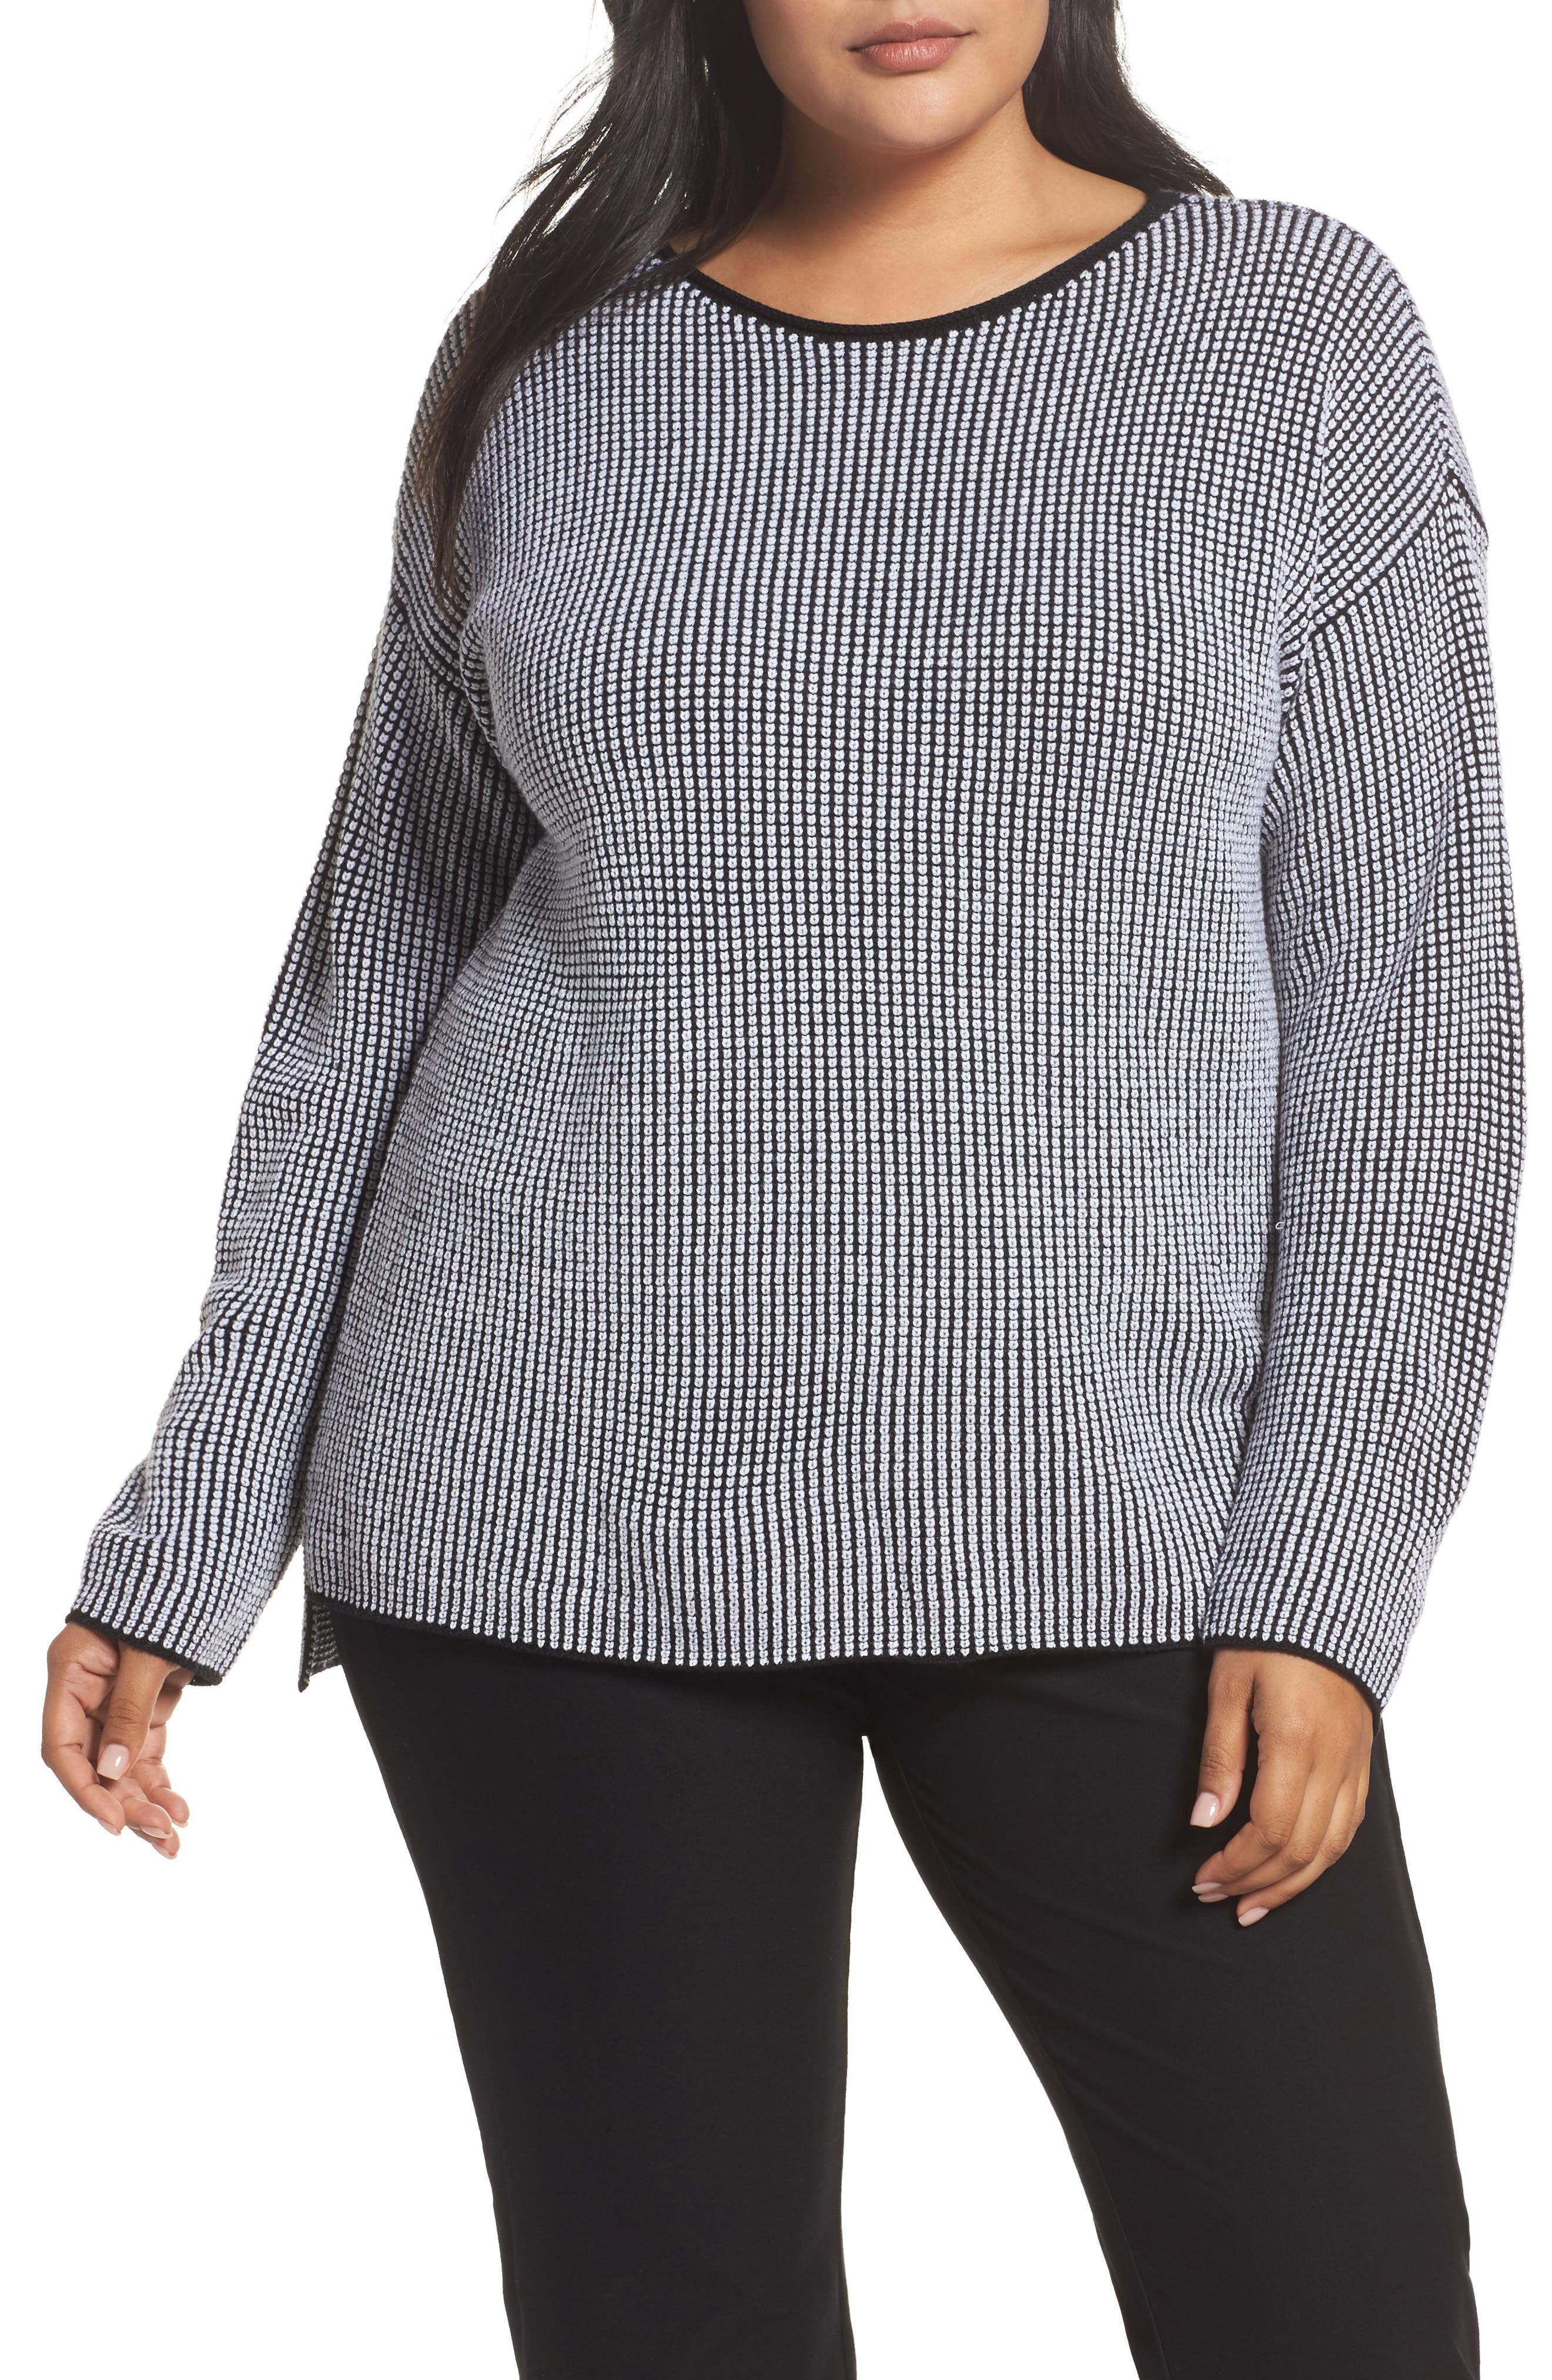 Alternate Image 1 Selected - Eileen Fisher Textured Merino Wool Sweater (Plus Size)